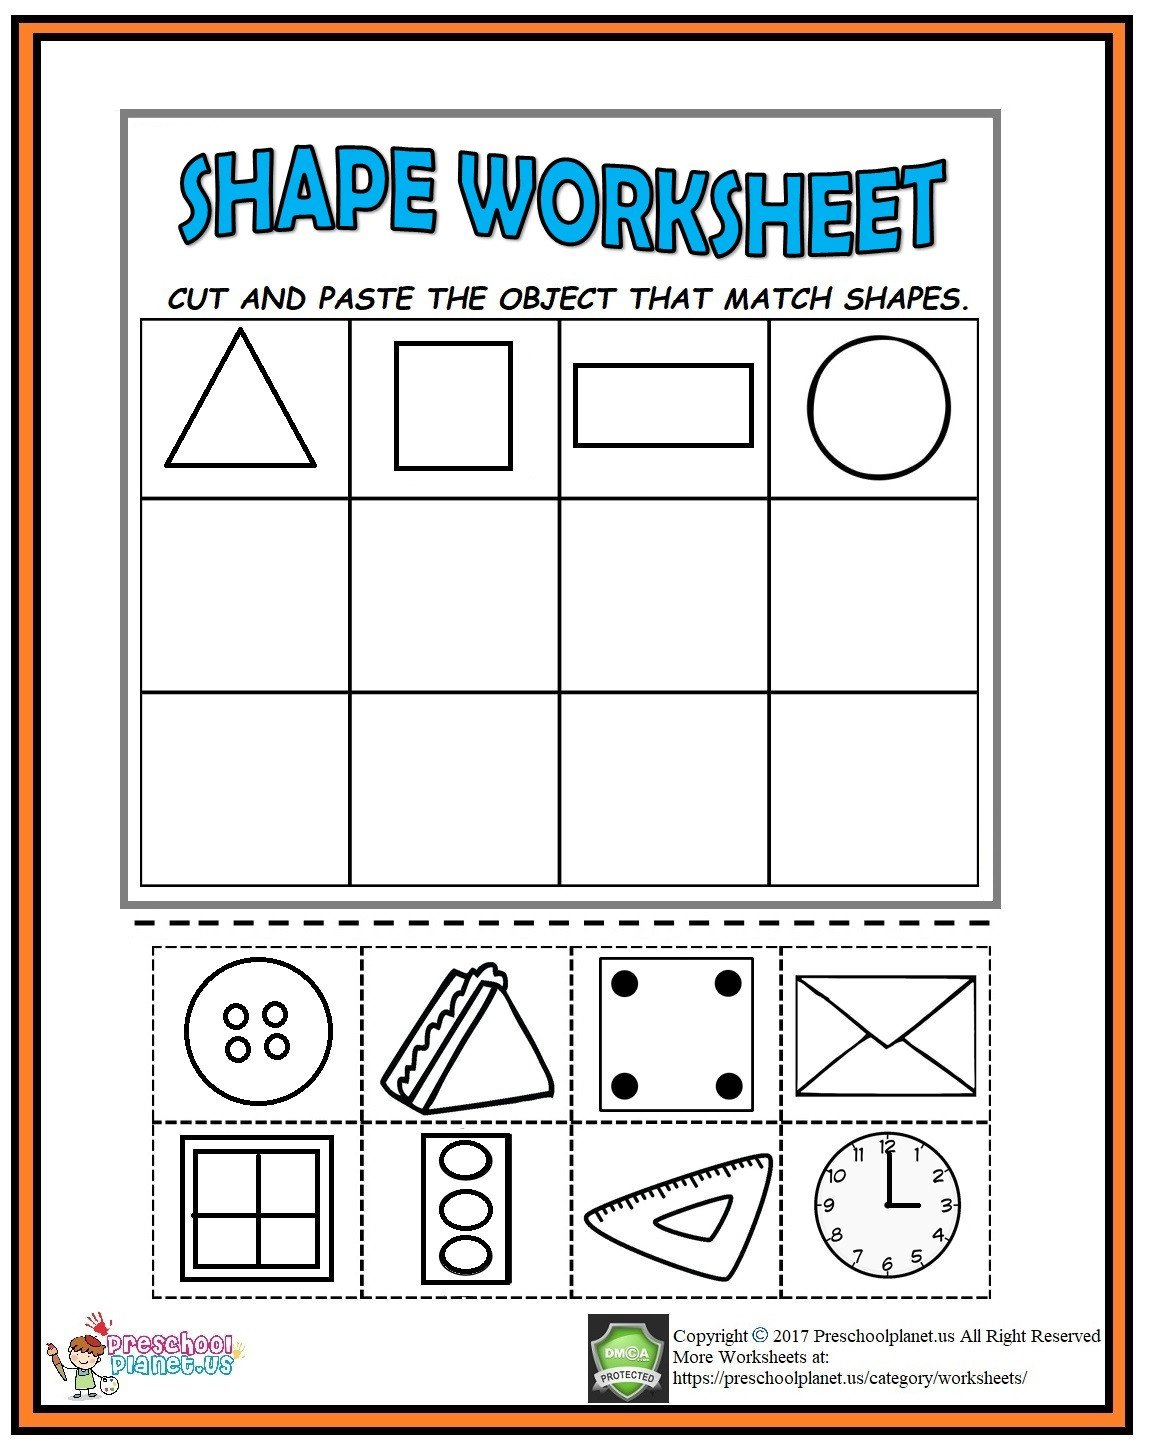 Cut and Paste Worksheet Cut and Paste Shape Worksheet – Preschoolplanet